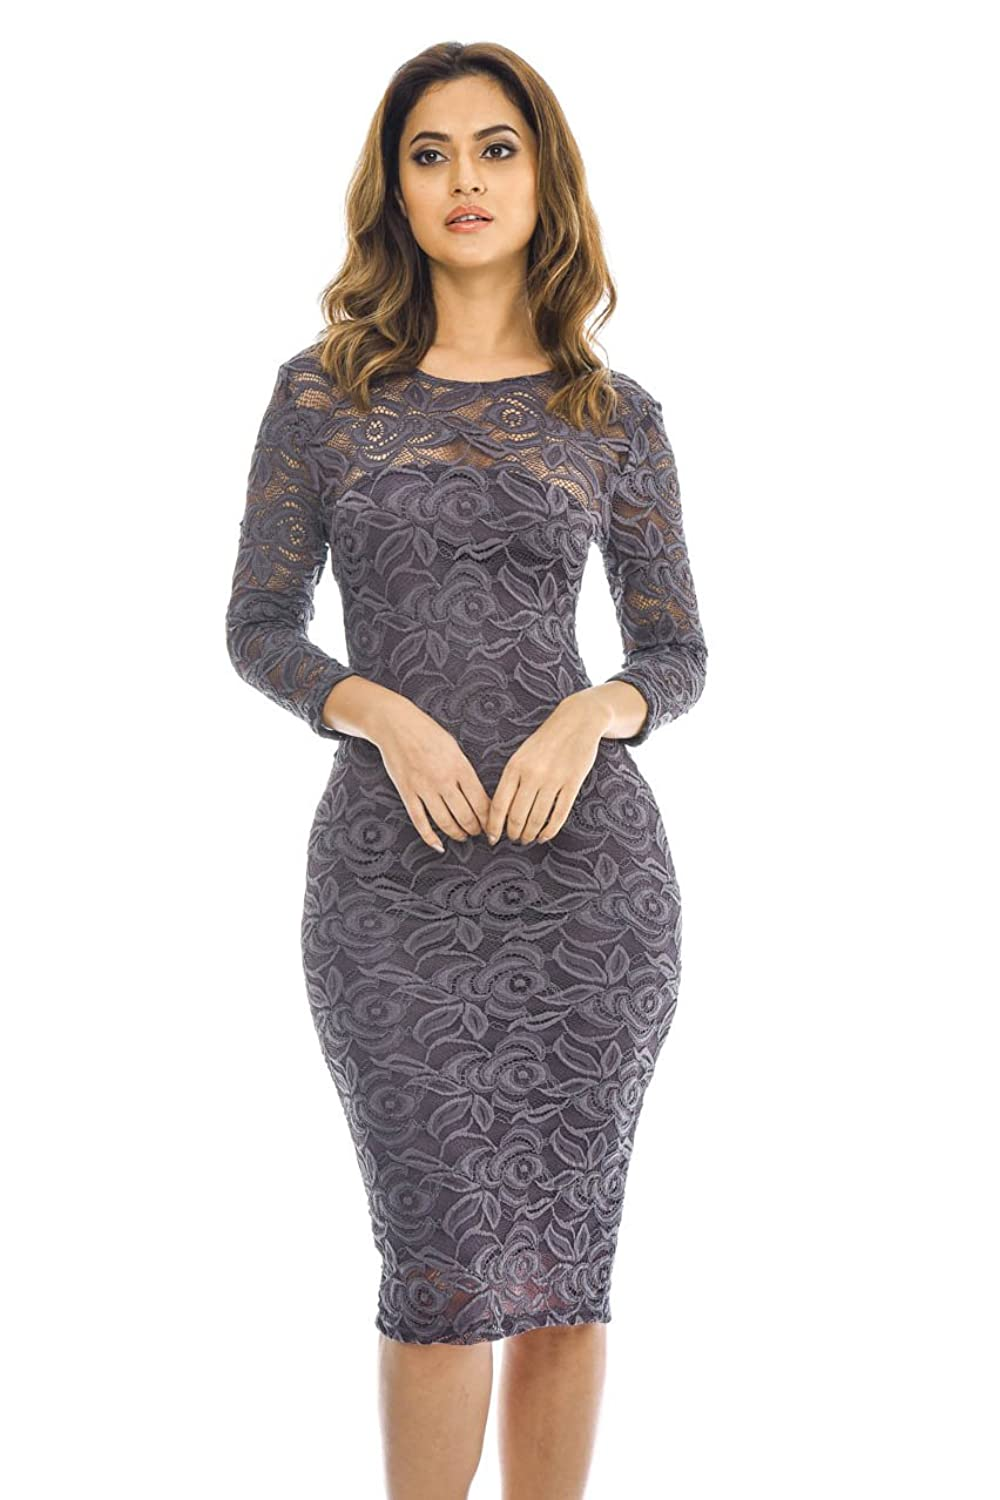 Ax Paris Womens 3/4 Sleeve Lace Bodycon Glamorous Ladies Fashion